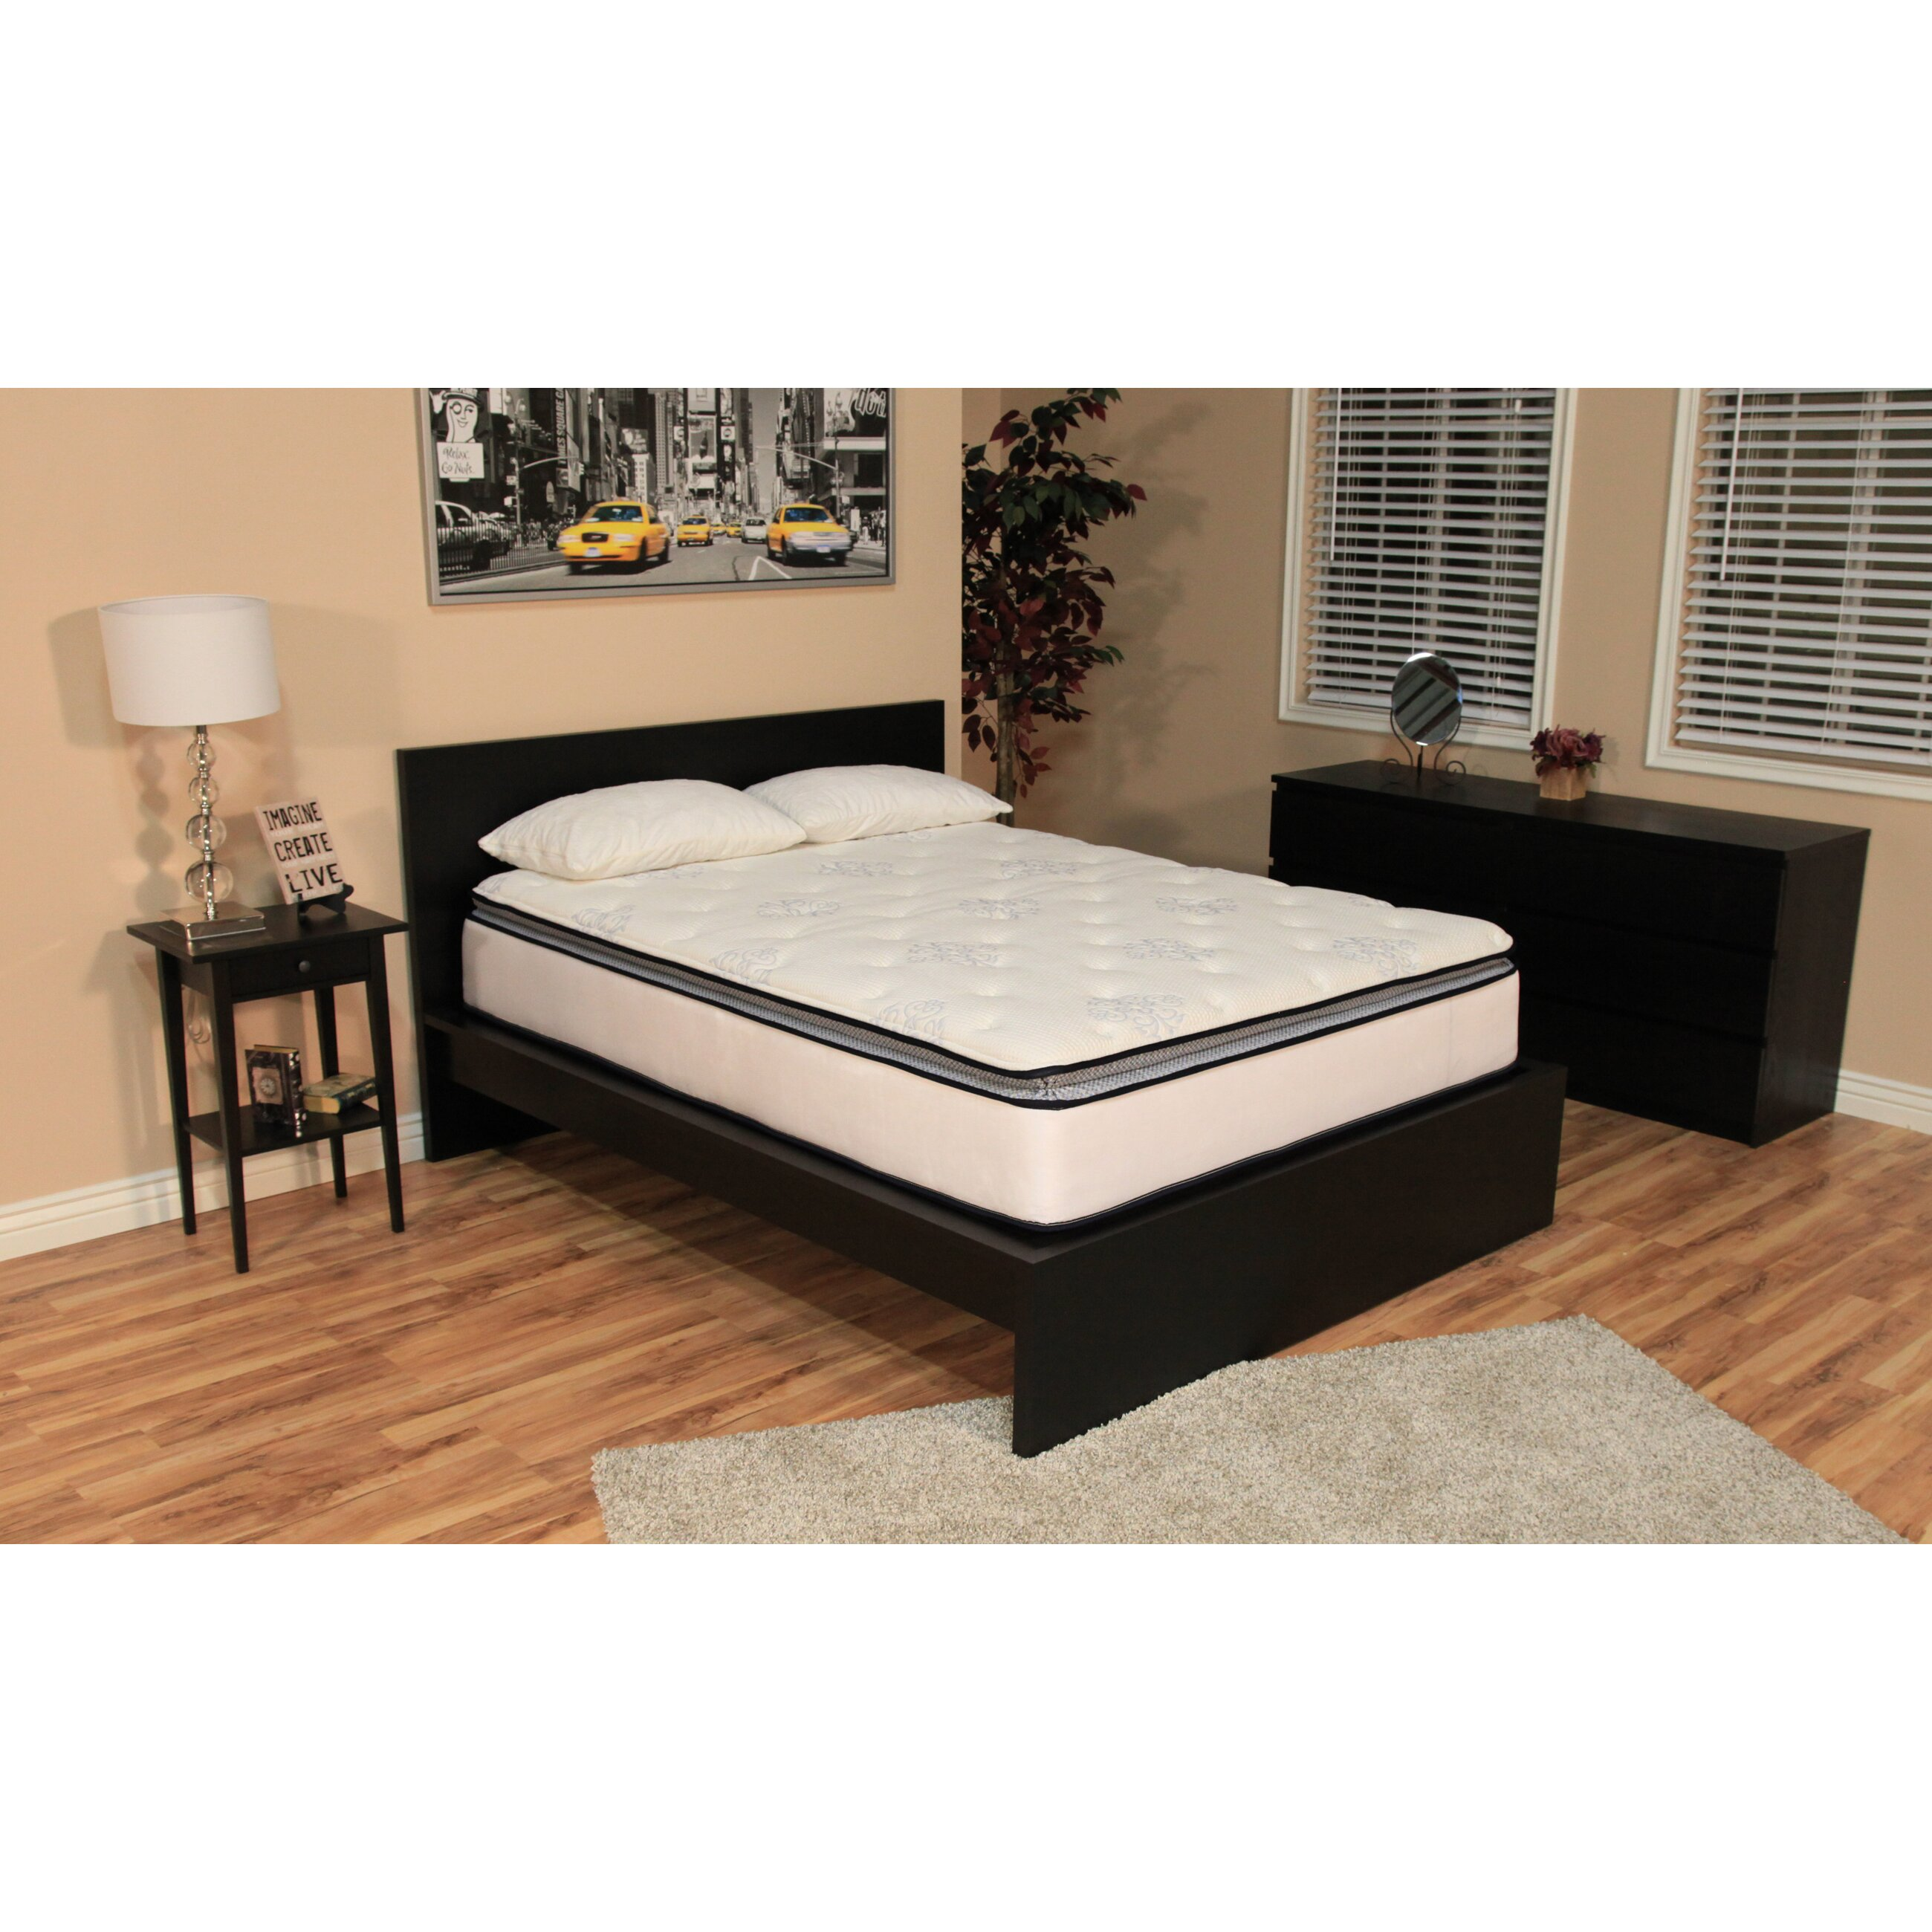 Brooklyn bedding ultimate dreams 12quot firm mattress for Brooklyn bedding ultimate dreams